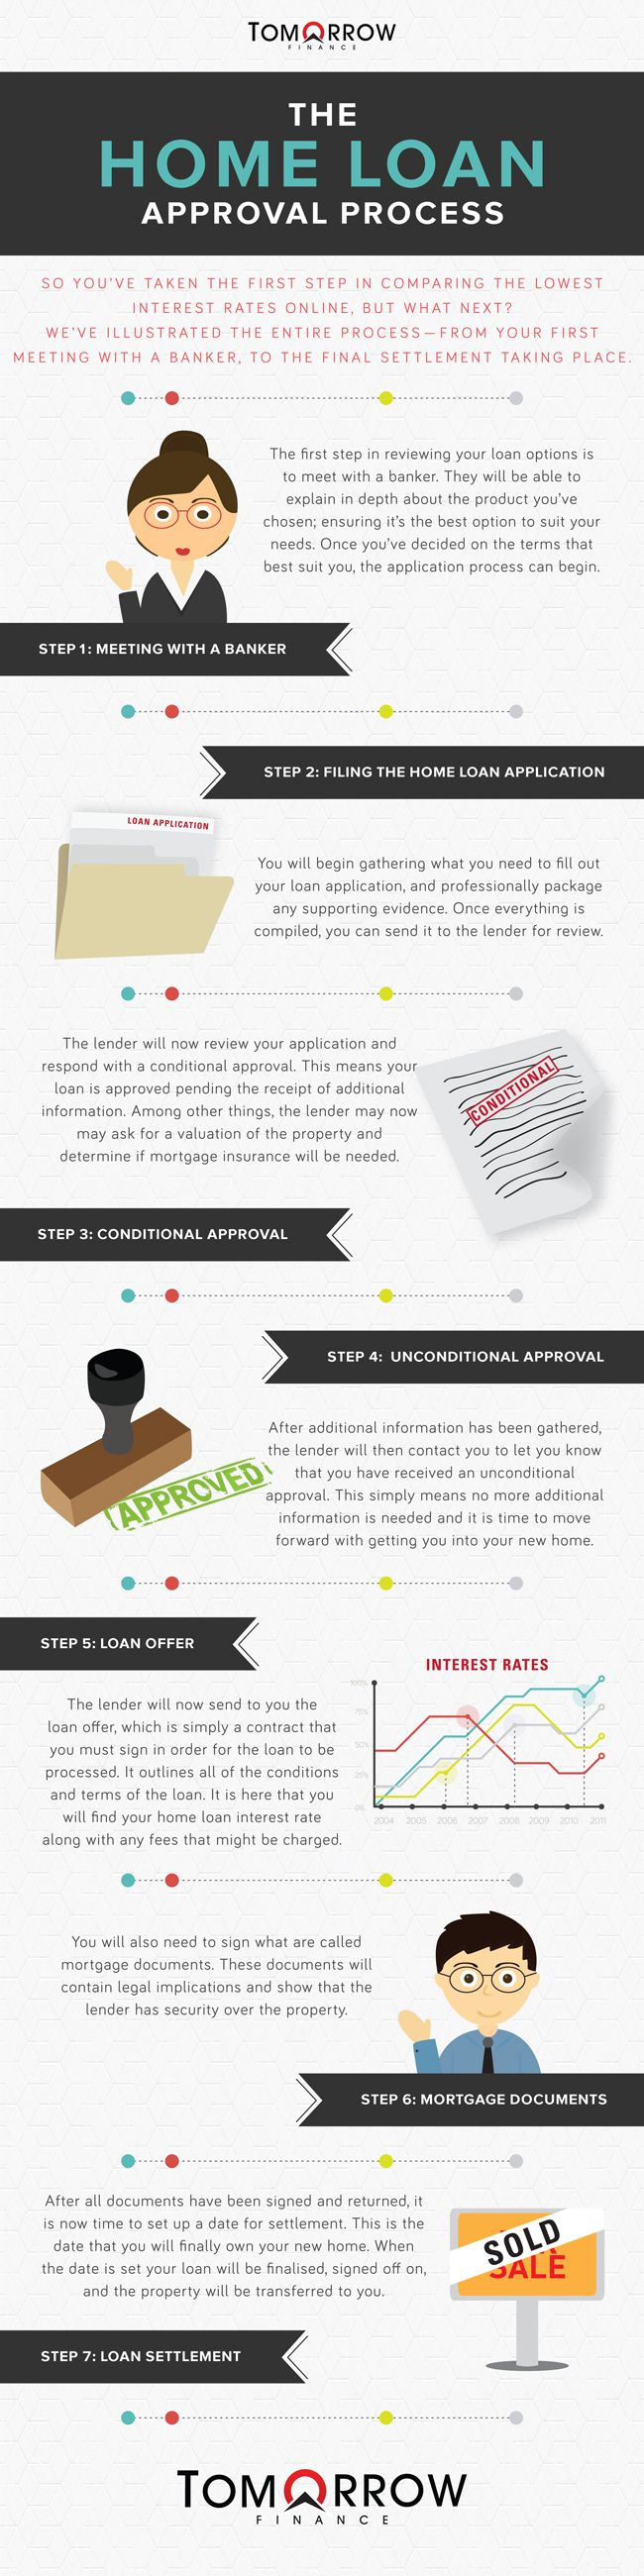 Home Loan Approval Process Infographic   #DwellAware #San Diego #mortgage